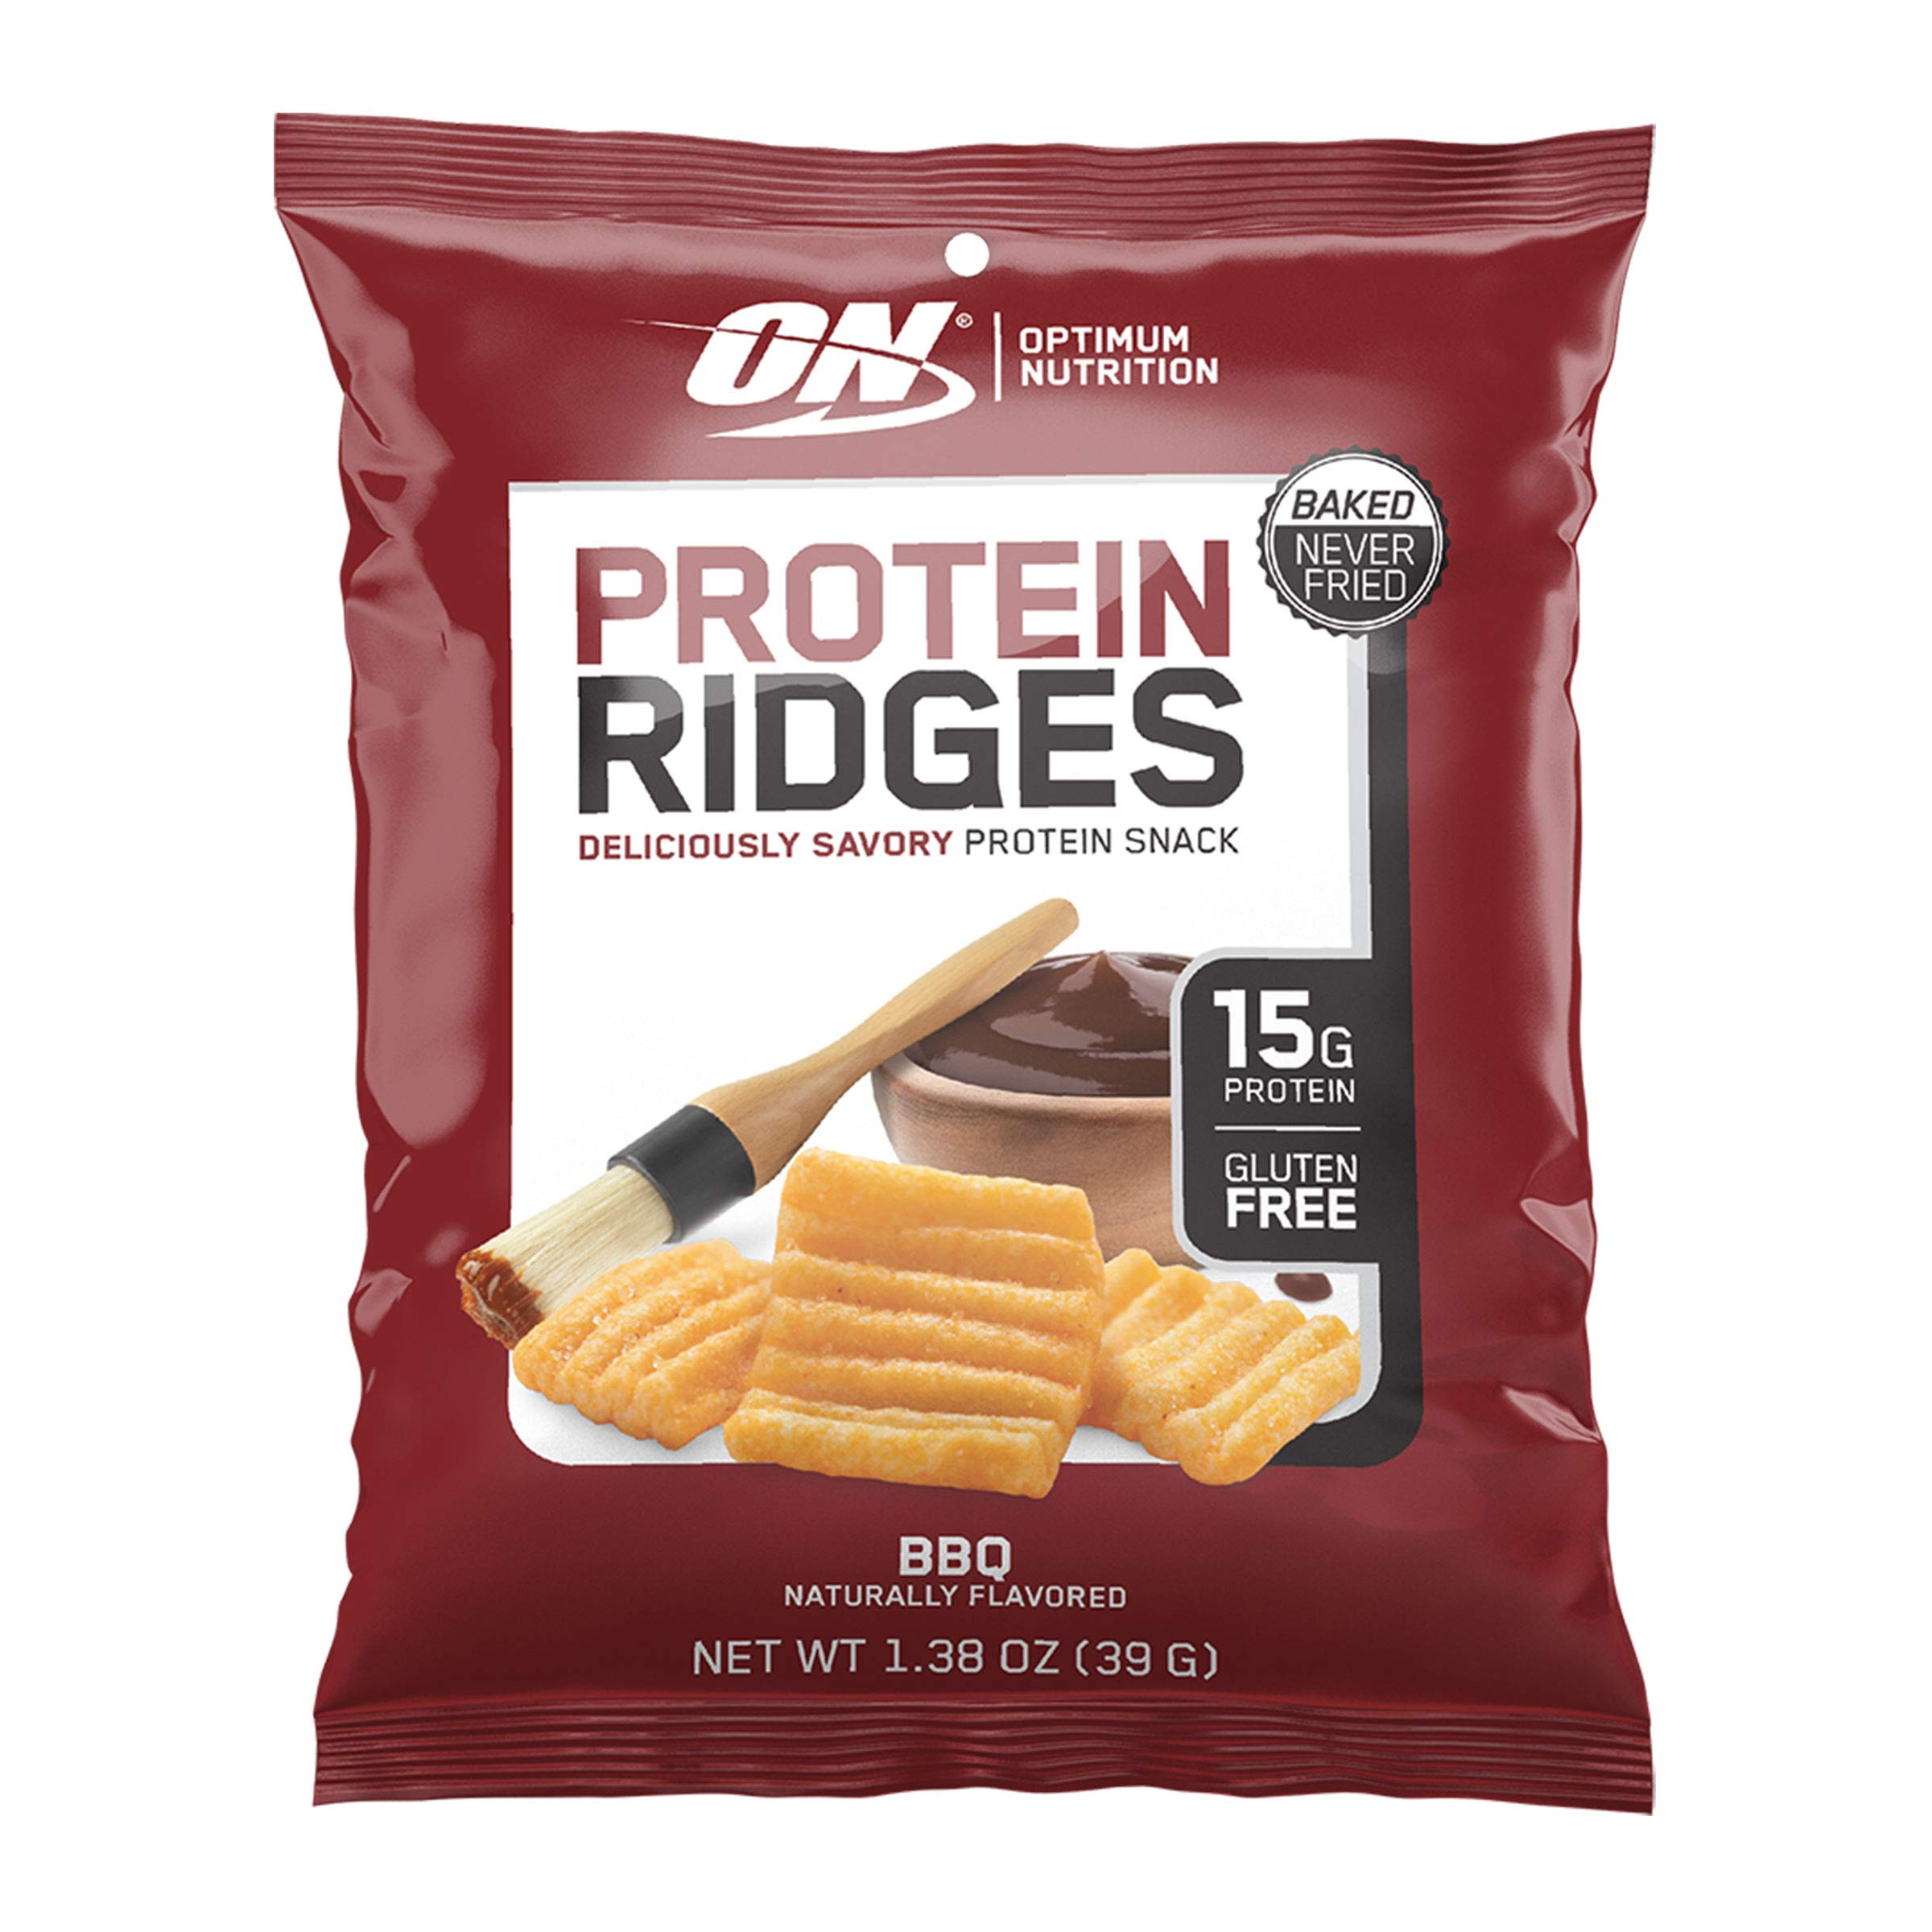 Optimum Nutrition High Protein Ridges Baked Chips, BBQ, 10 Count